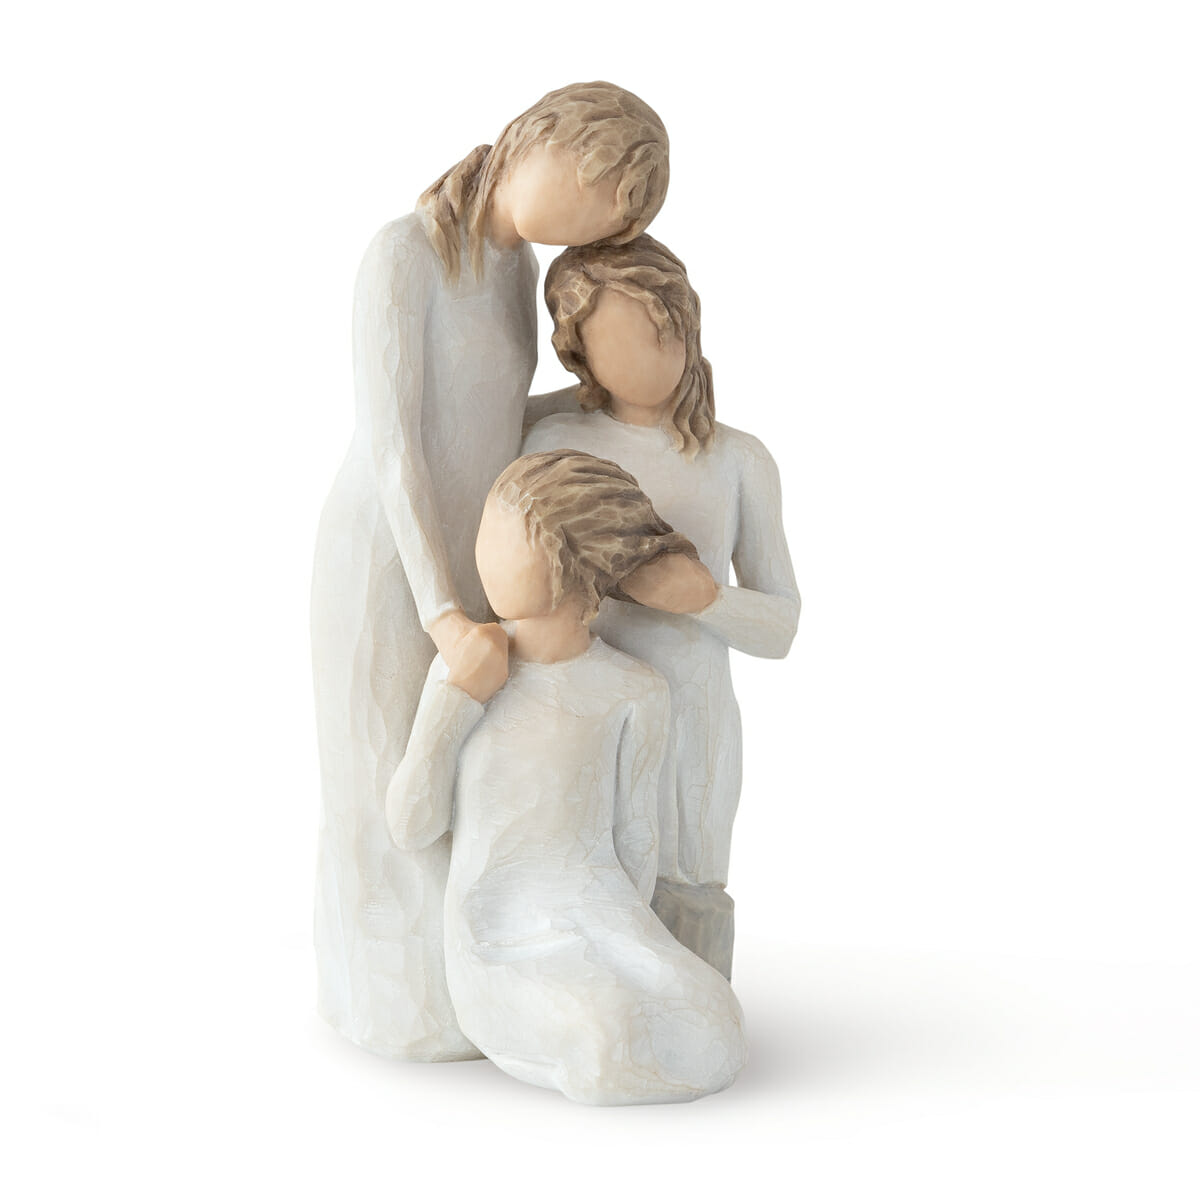 WILLOW TREE - OUR HEALING TOUCH 28041 - SOLD OUT